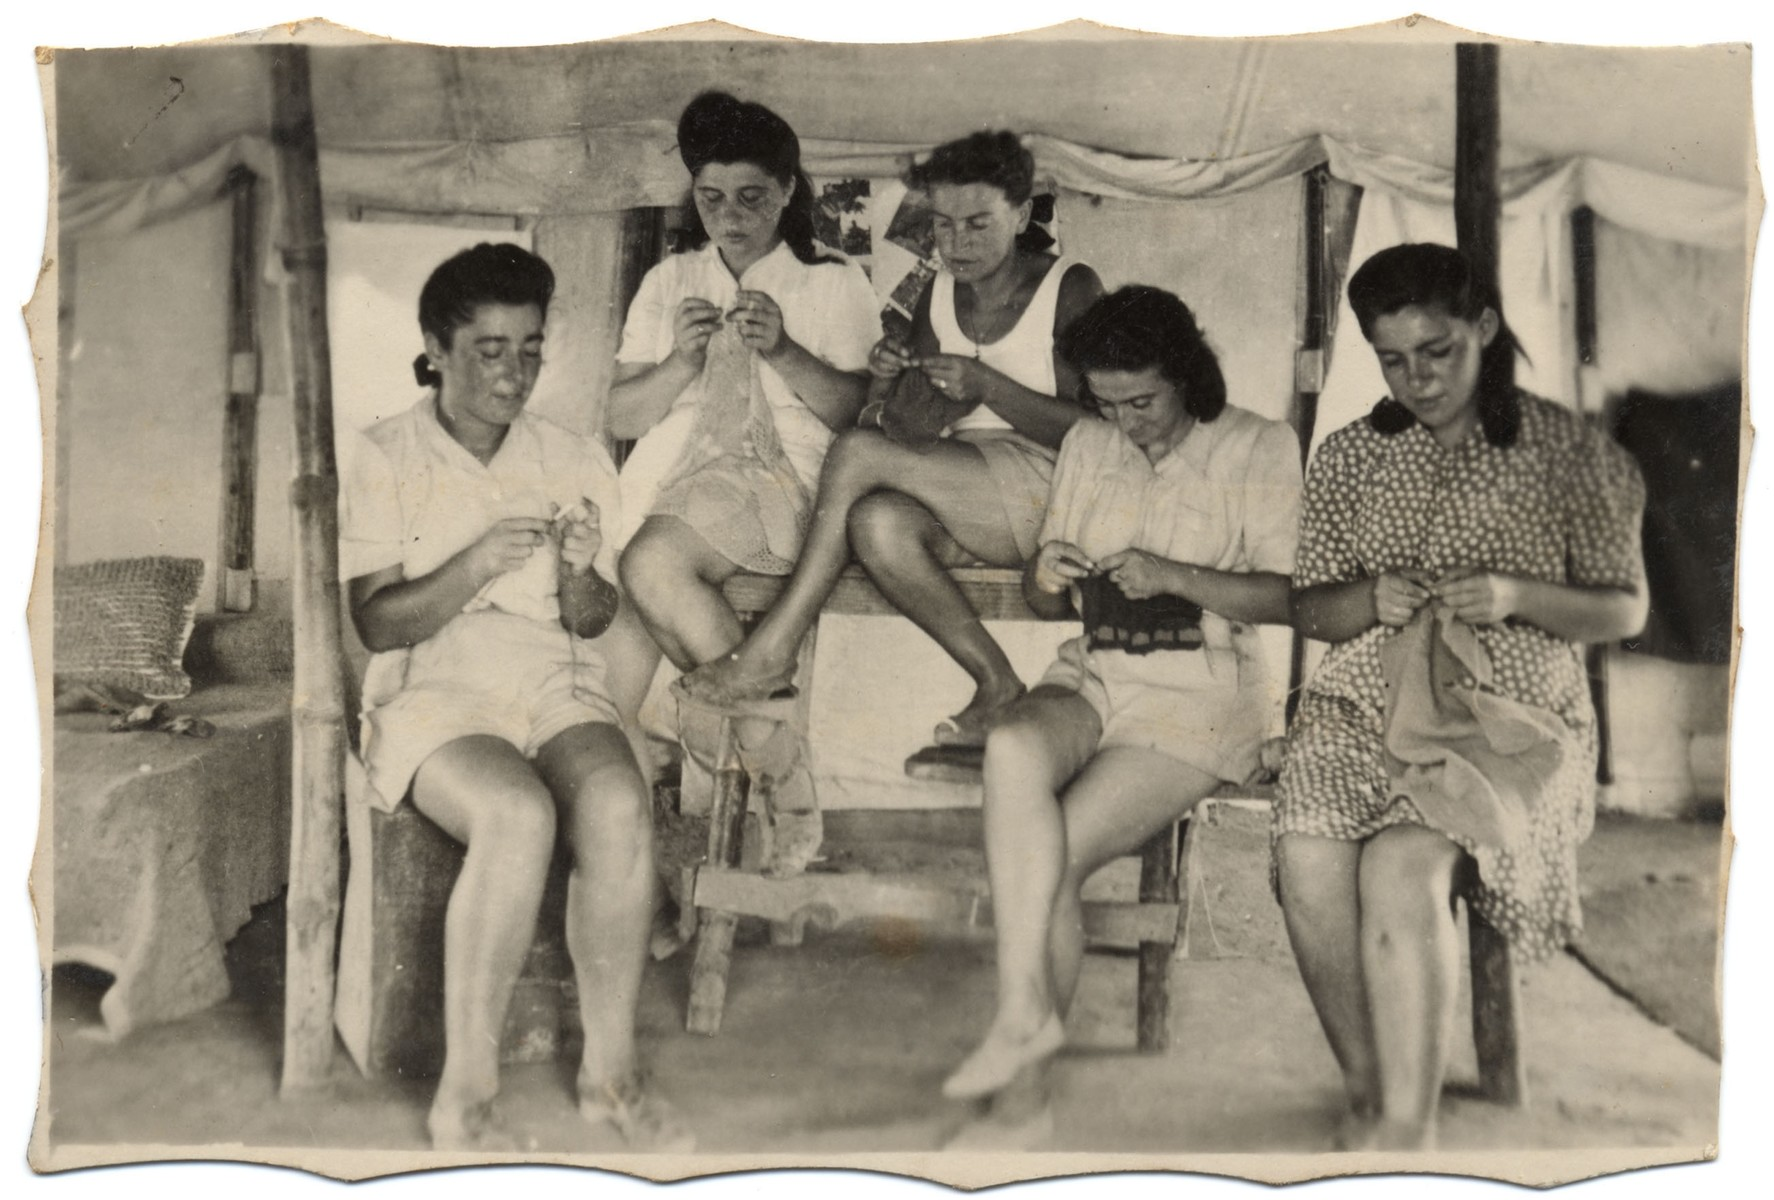 Group portrait of Jewish women knitting in a tent in an internment  camp in Cyprus.